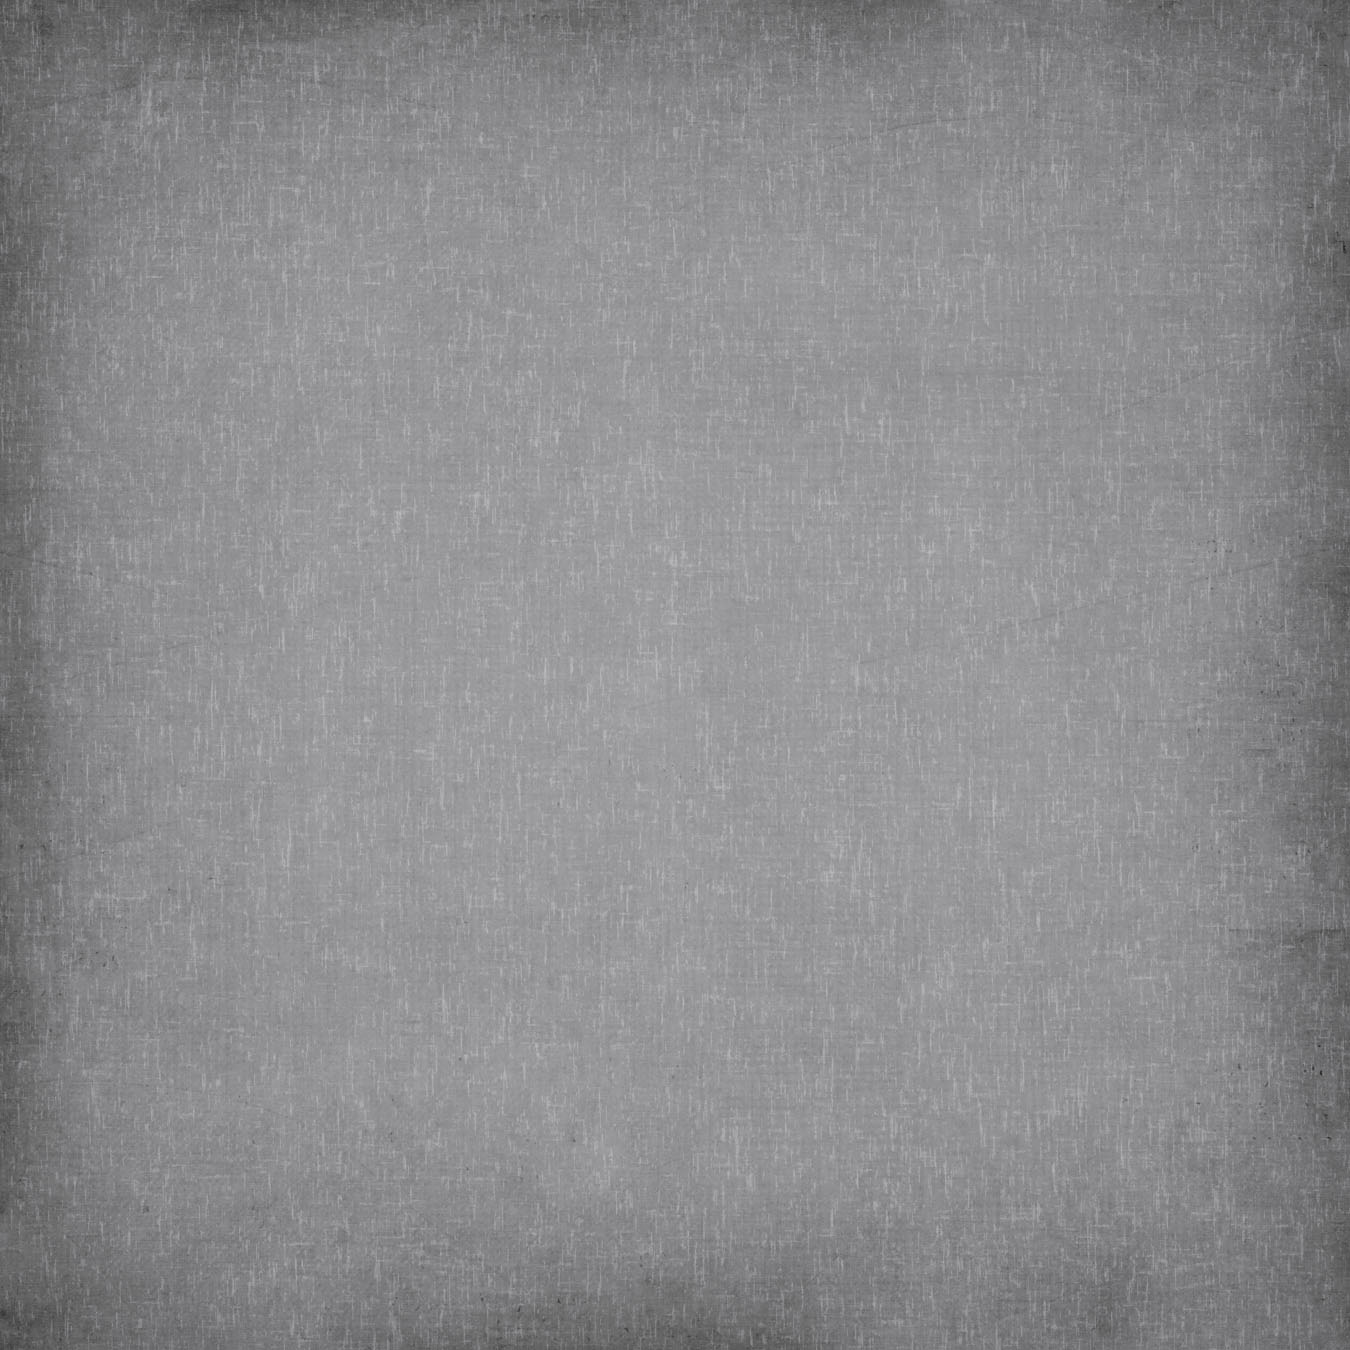 solid light gray wallpaper - photo #30